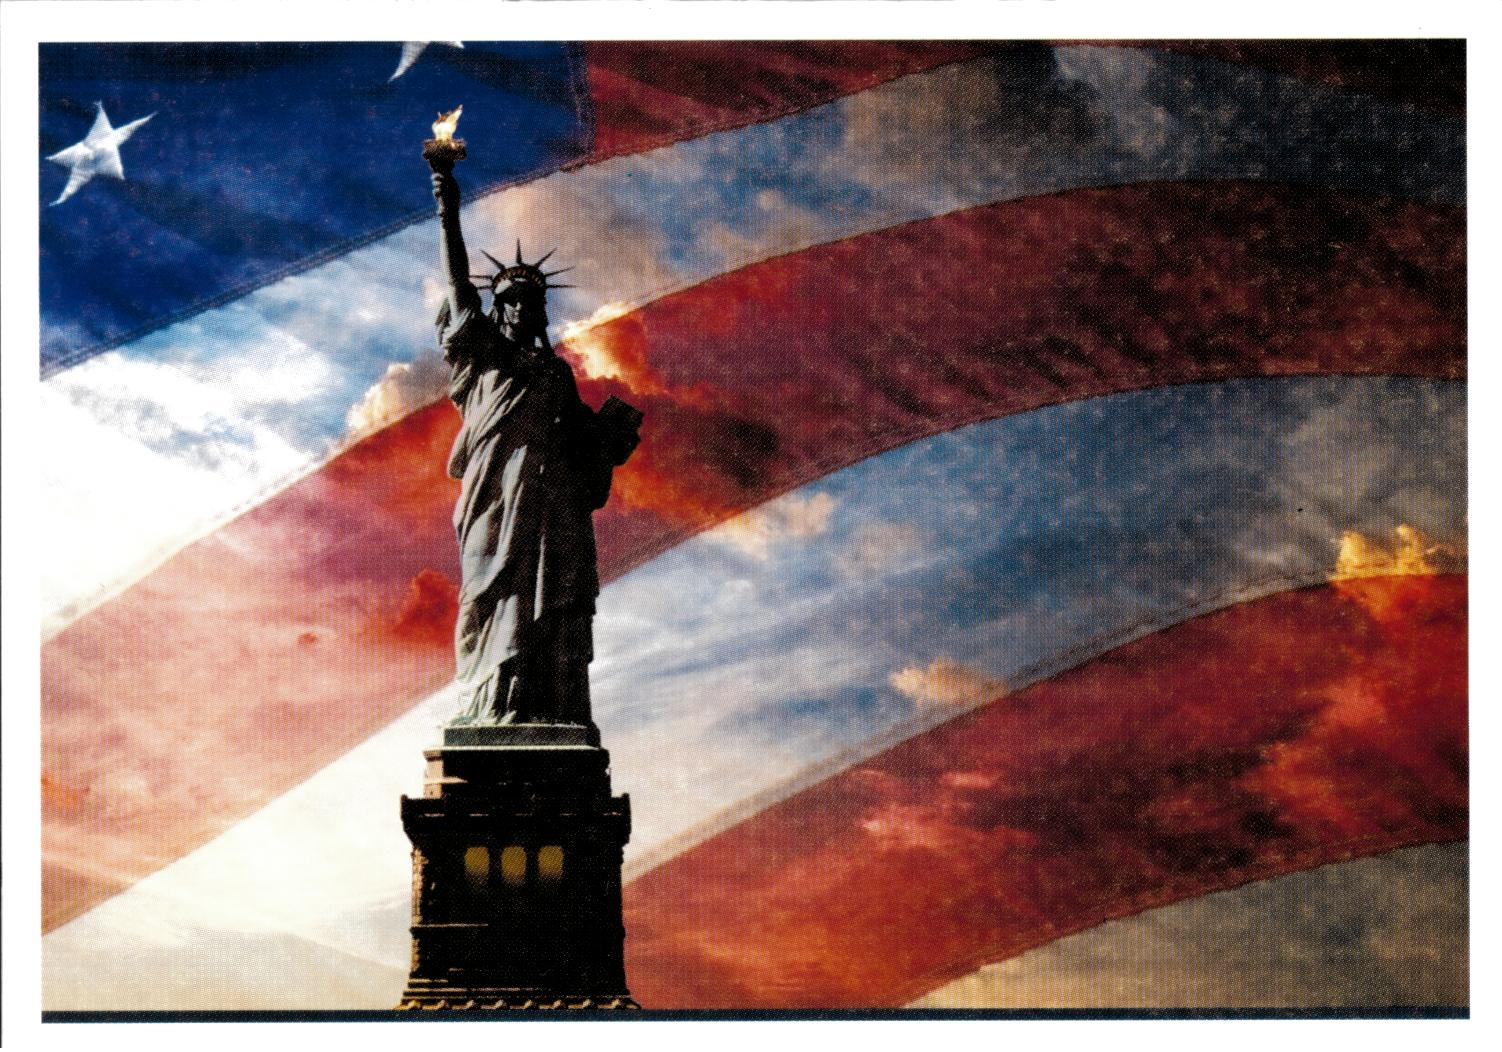 Proud American Salute to All Who Serve Our Great Nation